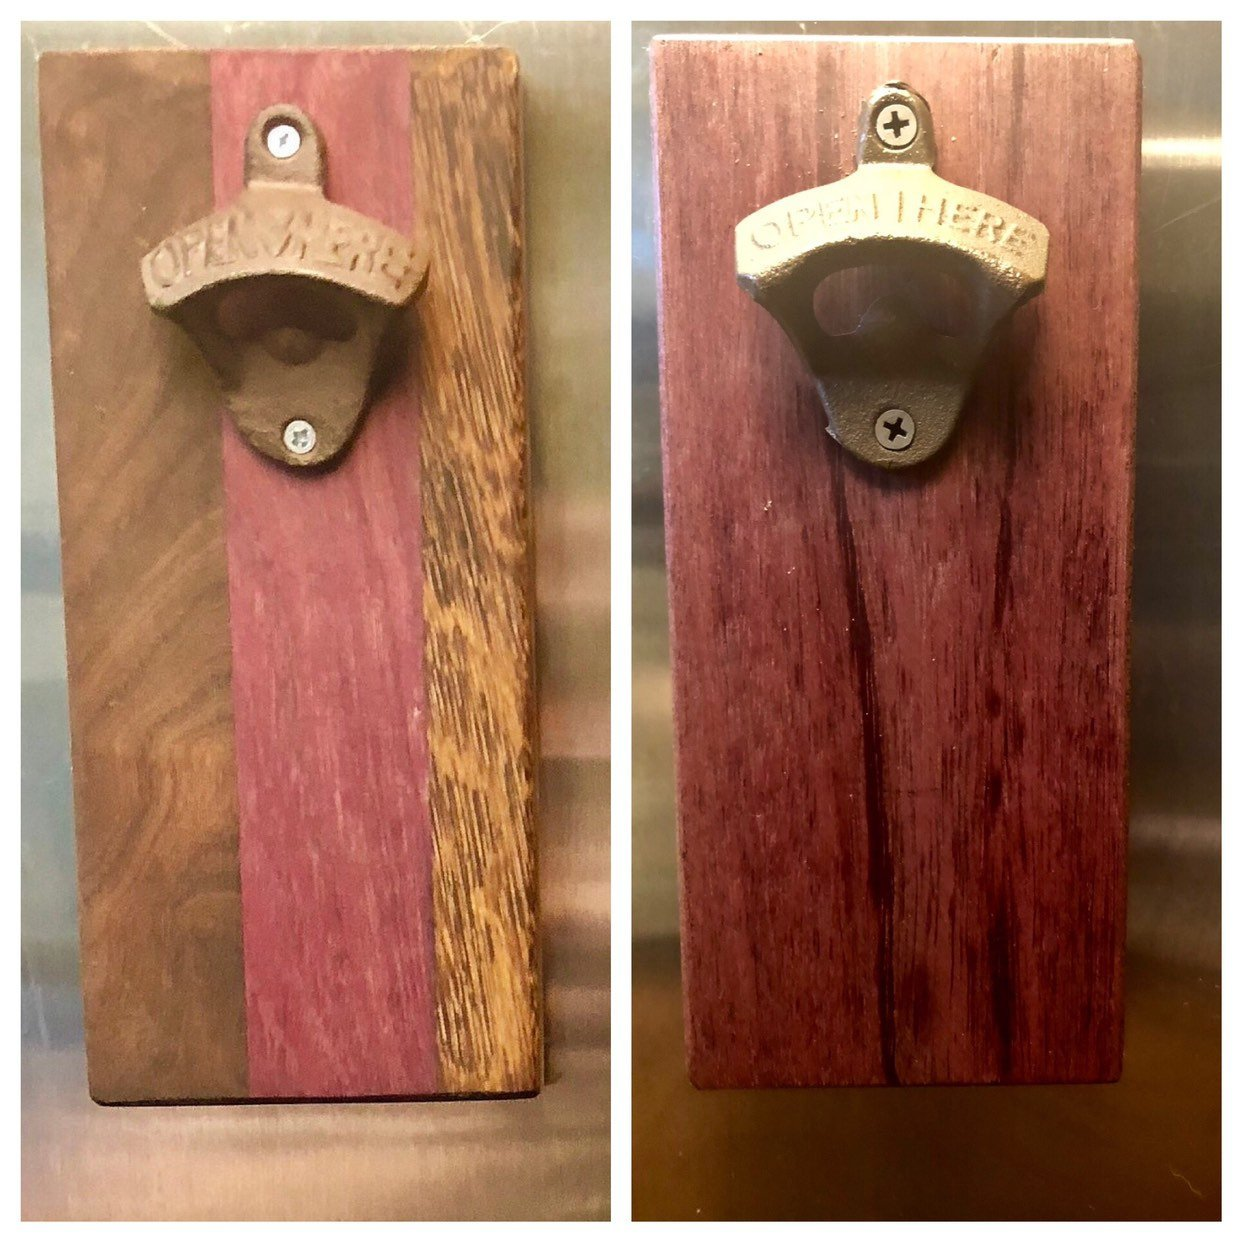 Cutting Board Style Magnetic Cast Iron Bottle Opener in premium hardwoods